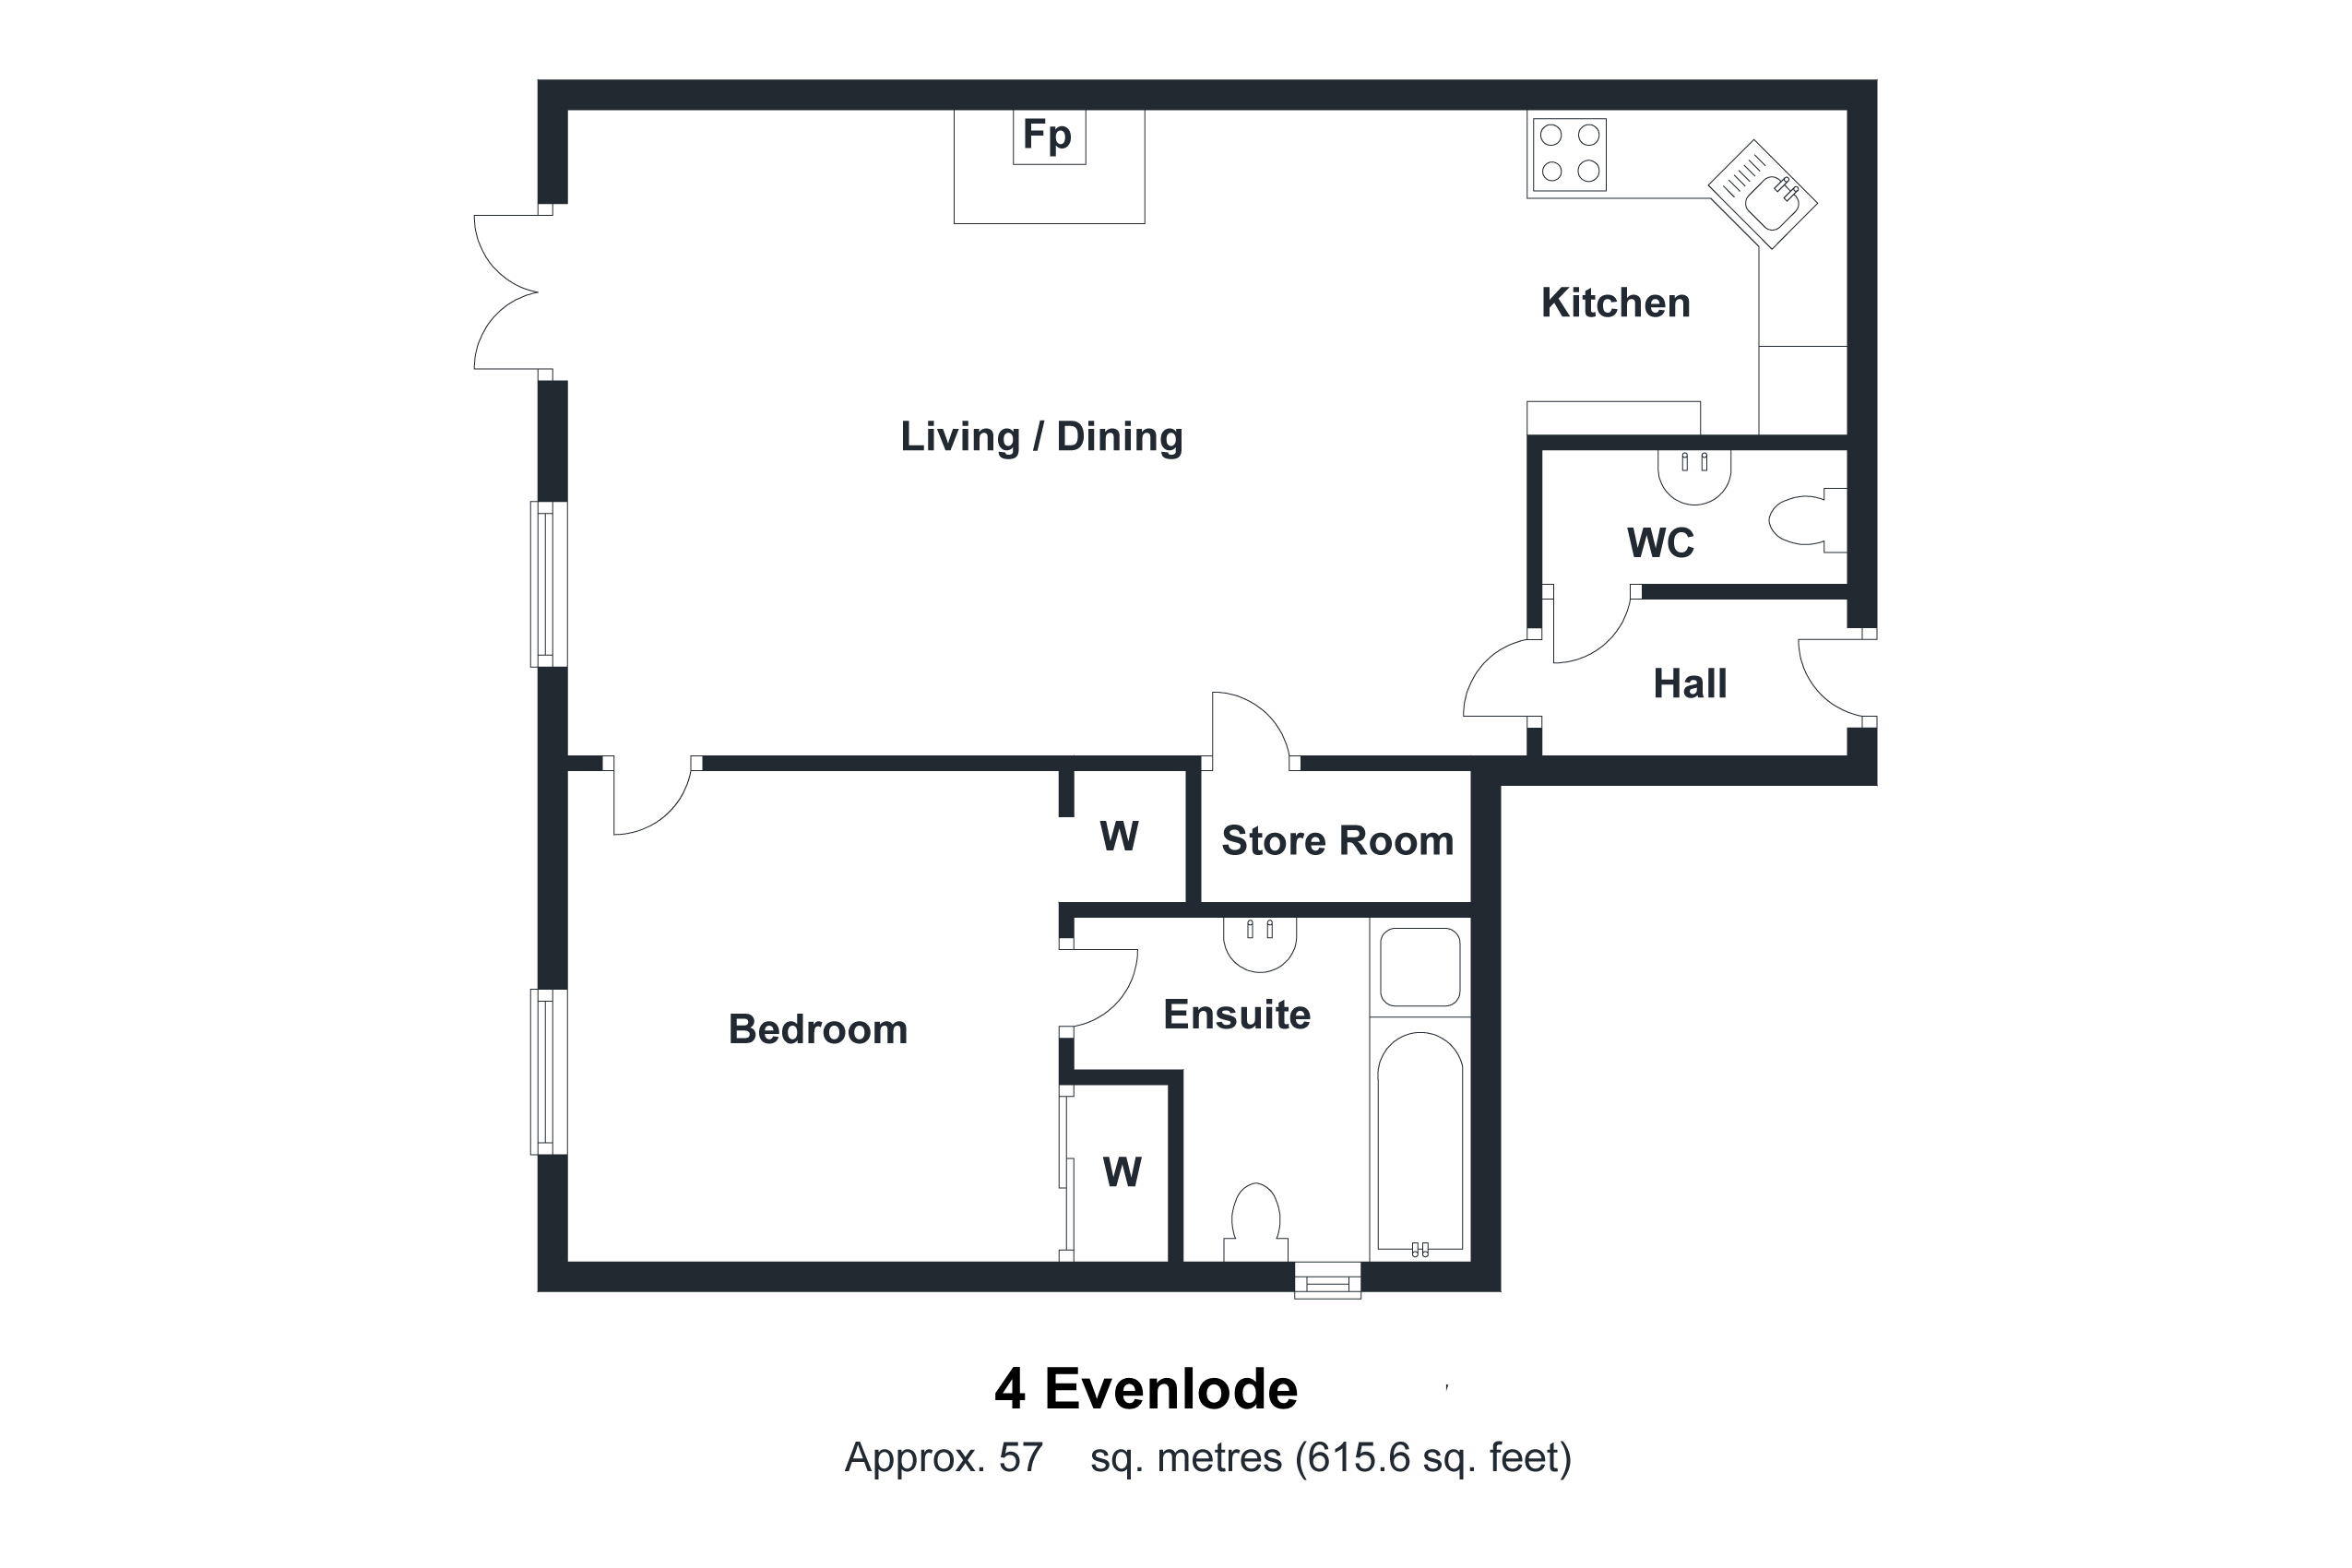 4 Evenlode Floorplan